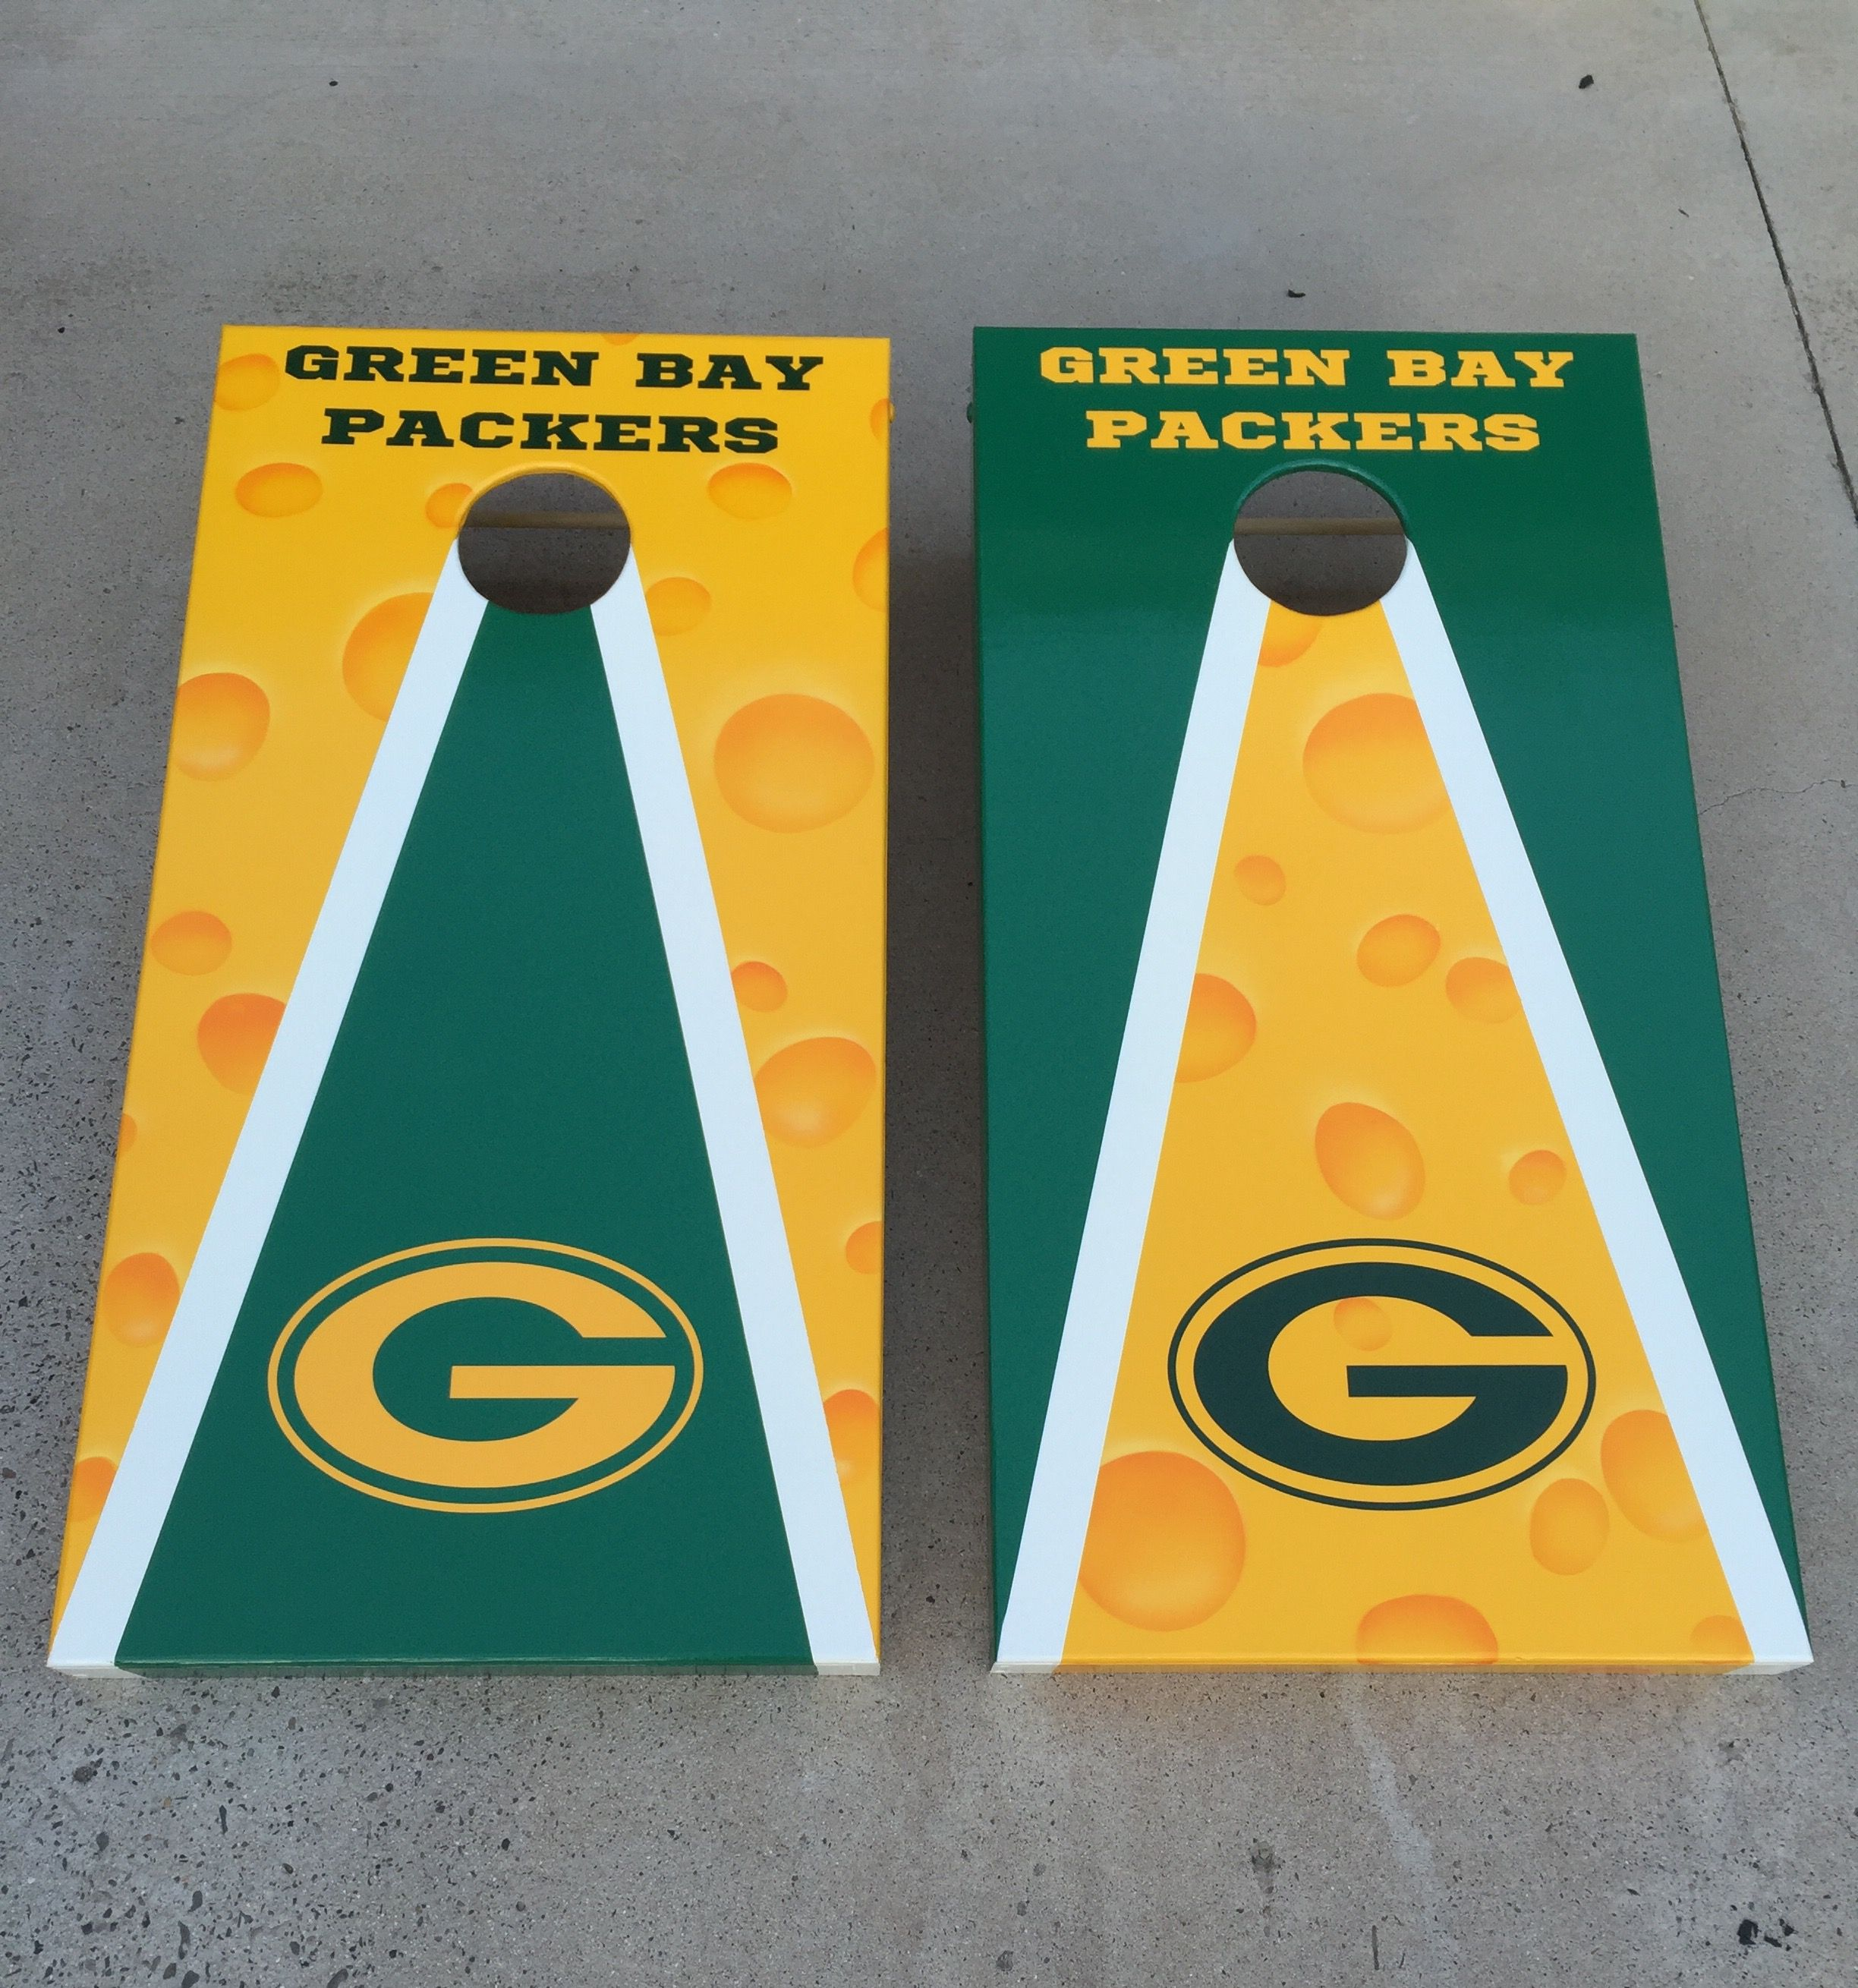 Packers Corn Hole Game On Cornhole Designs Cornhole Yard Games